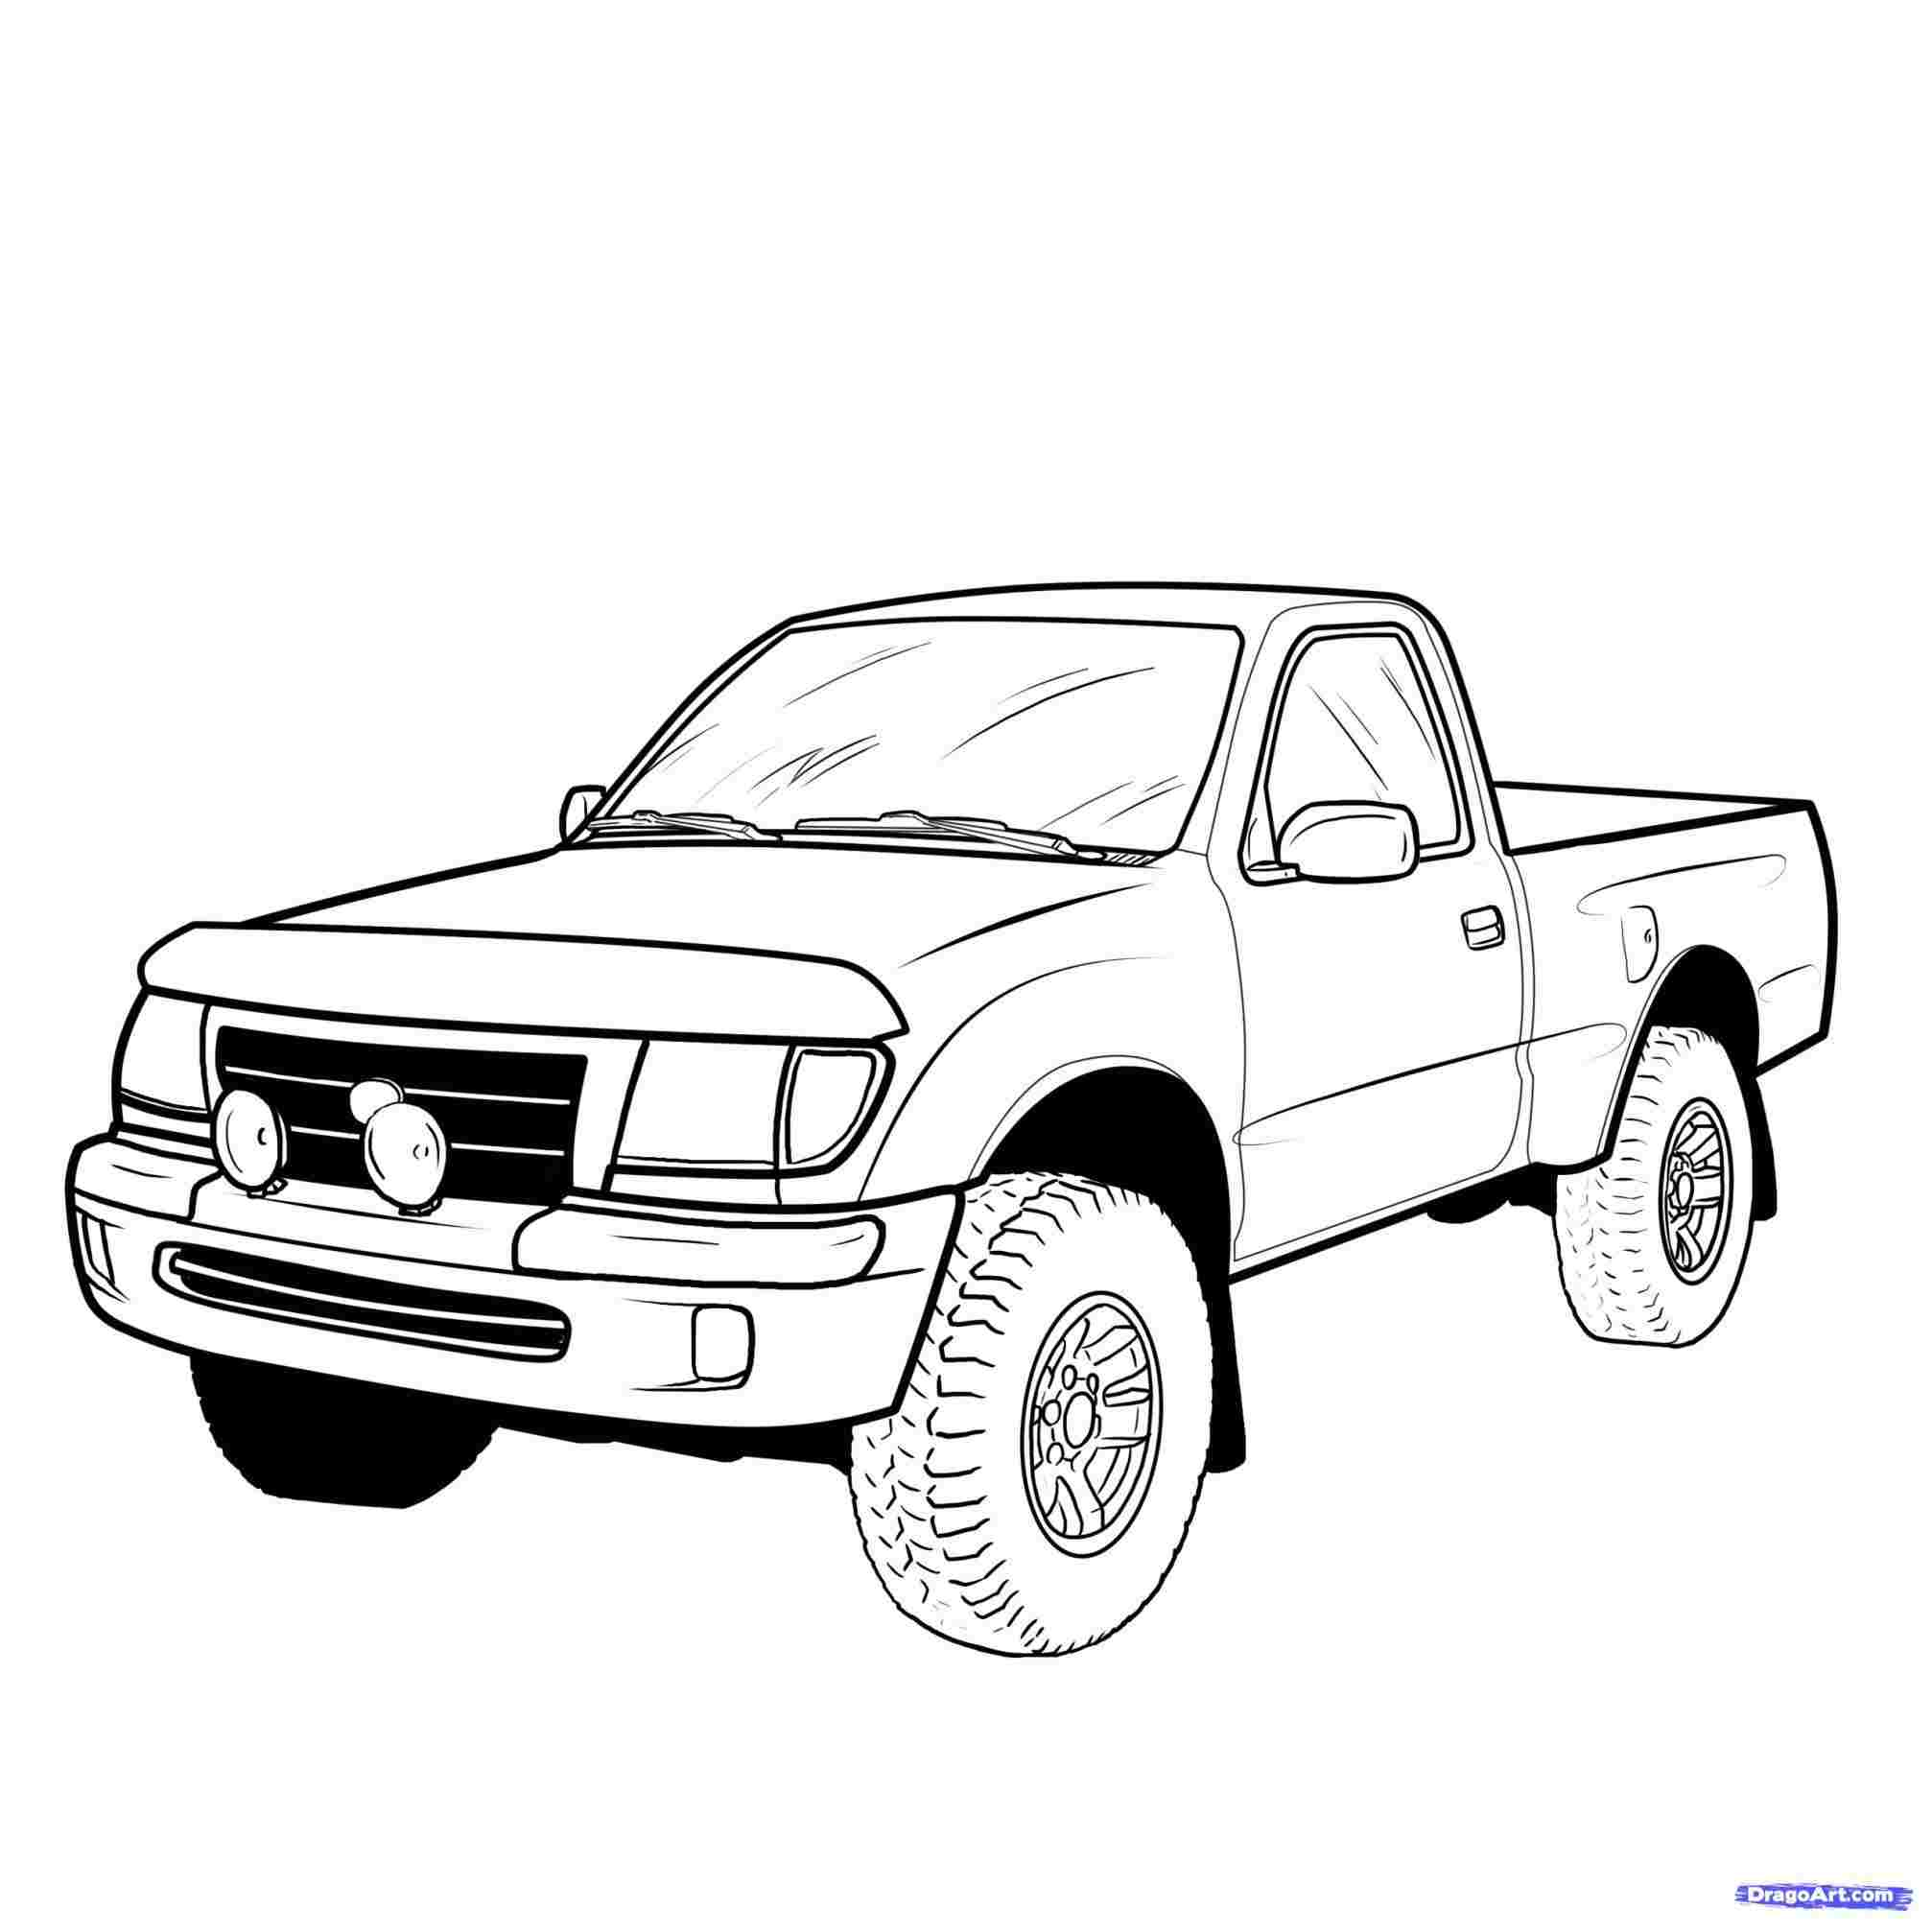 2014x2014 how diesel truck truck drawings easy to draw a pickup